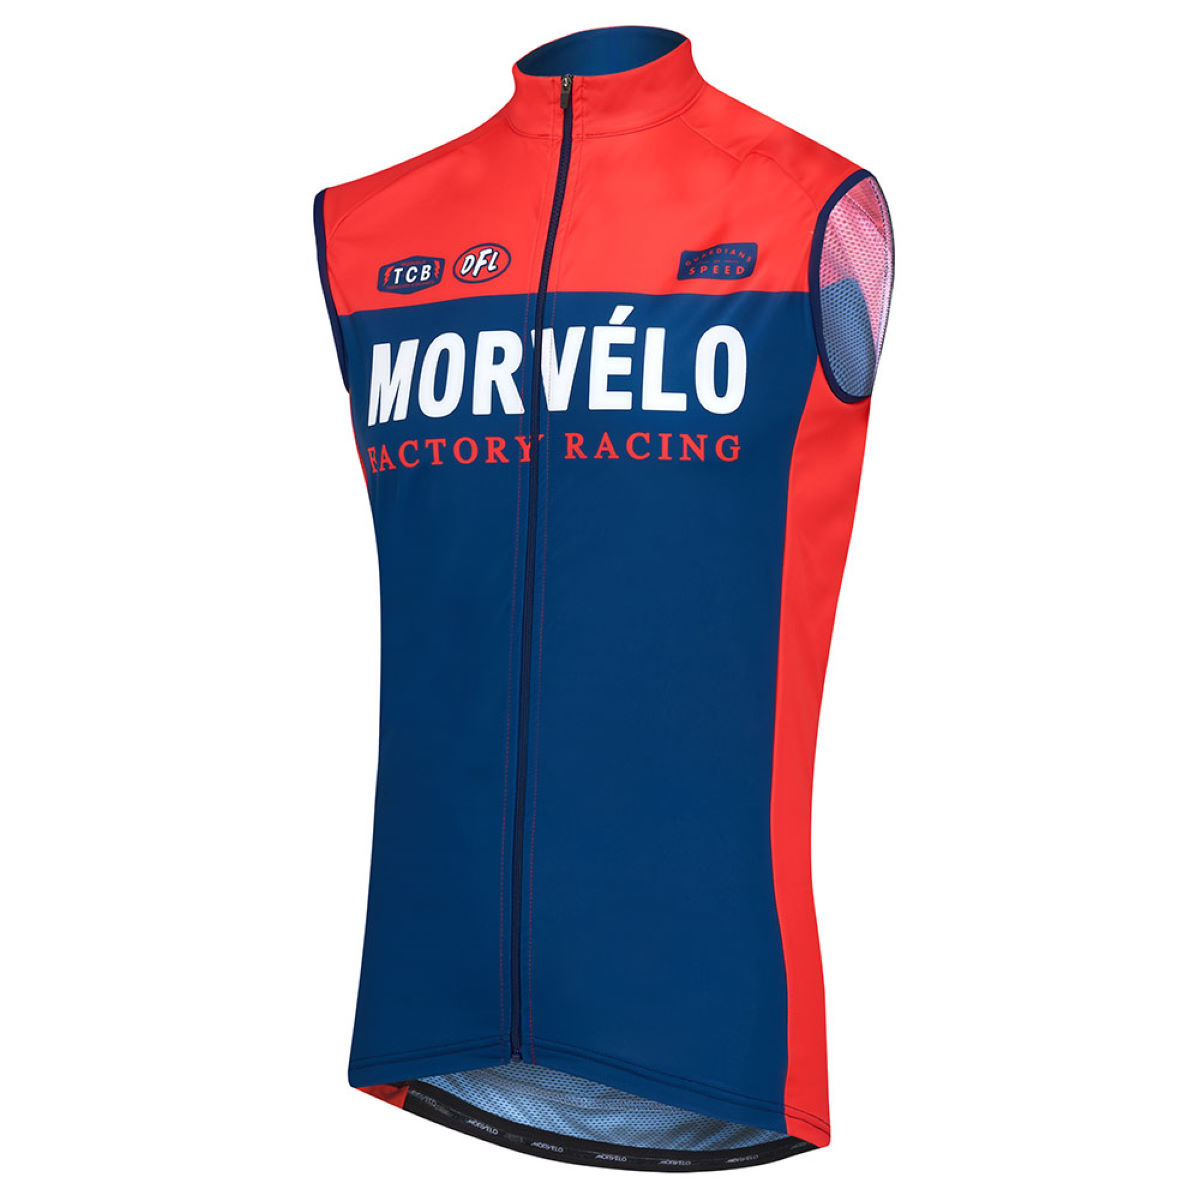 Gilet sans manches VTT Morvelo Factory Racing Covert - L Factory Racing Gilets vélo